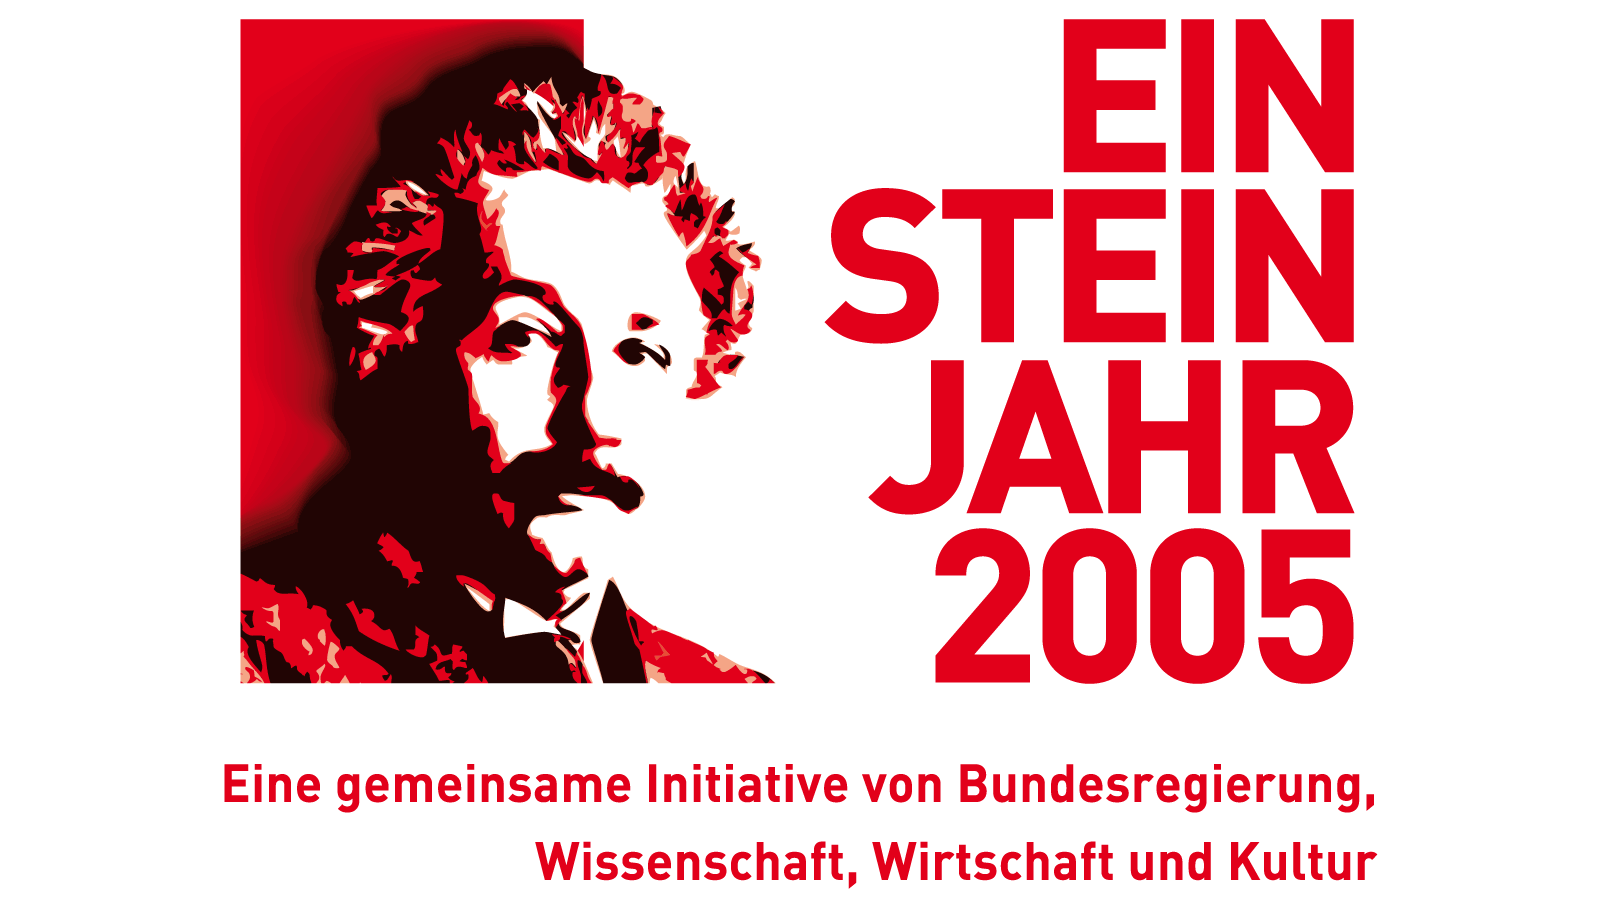 Evaluation_Einsteinjahr